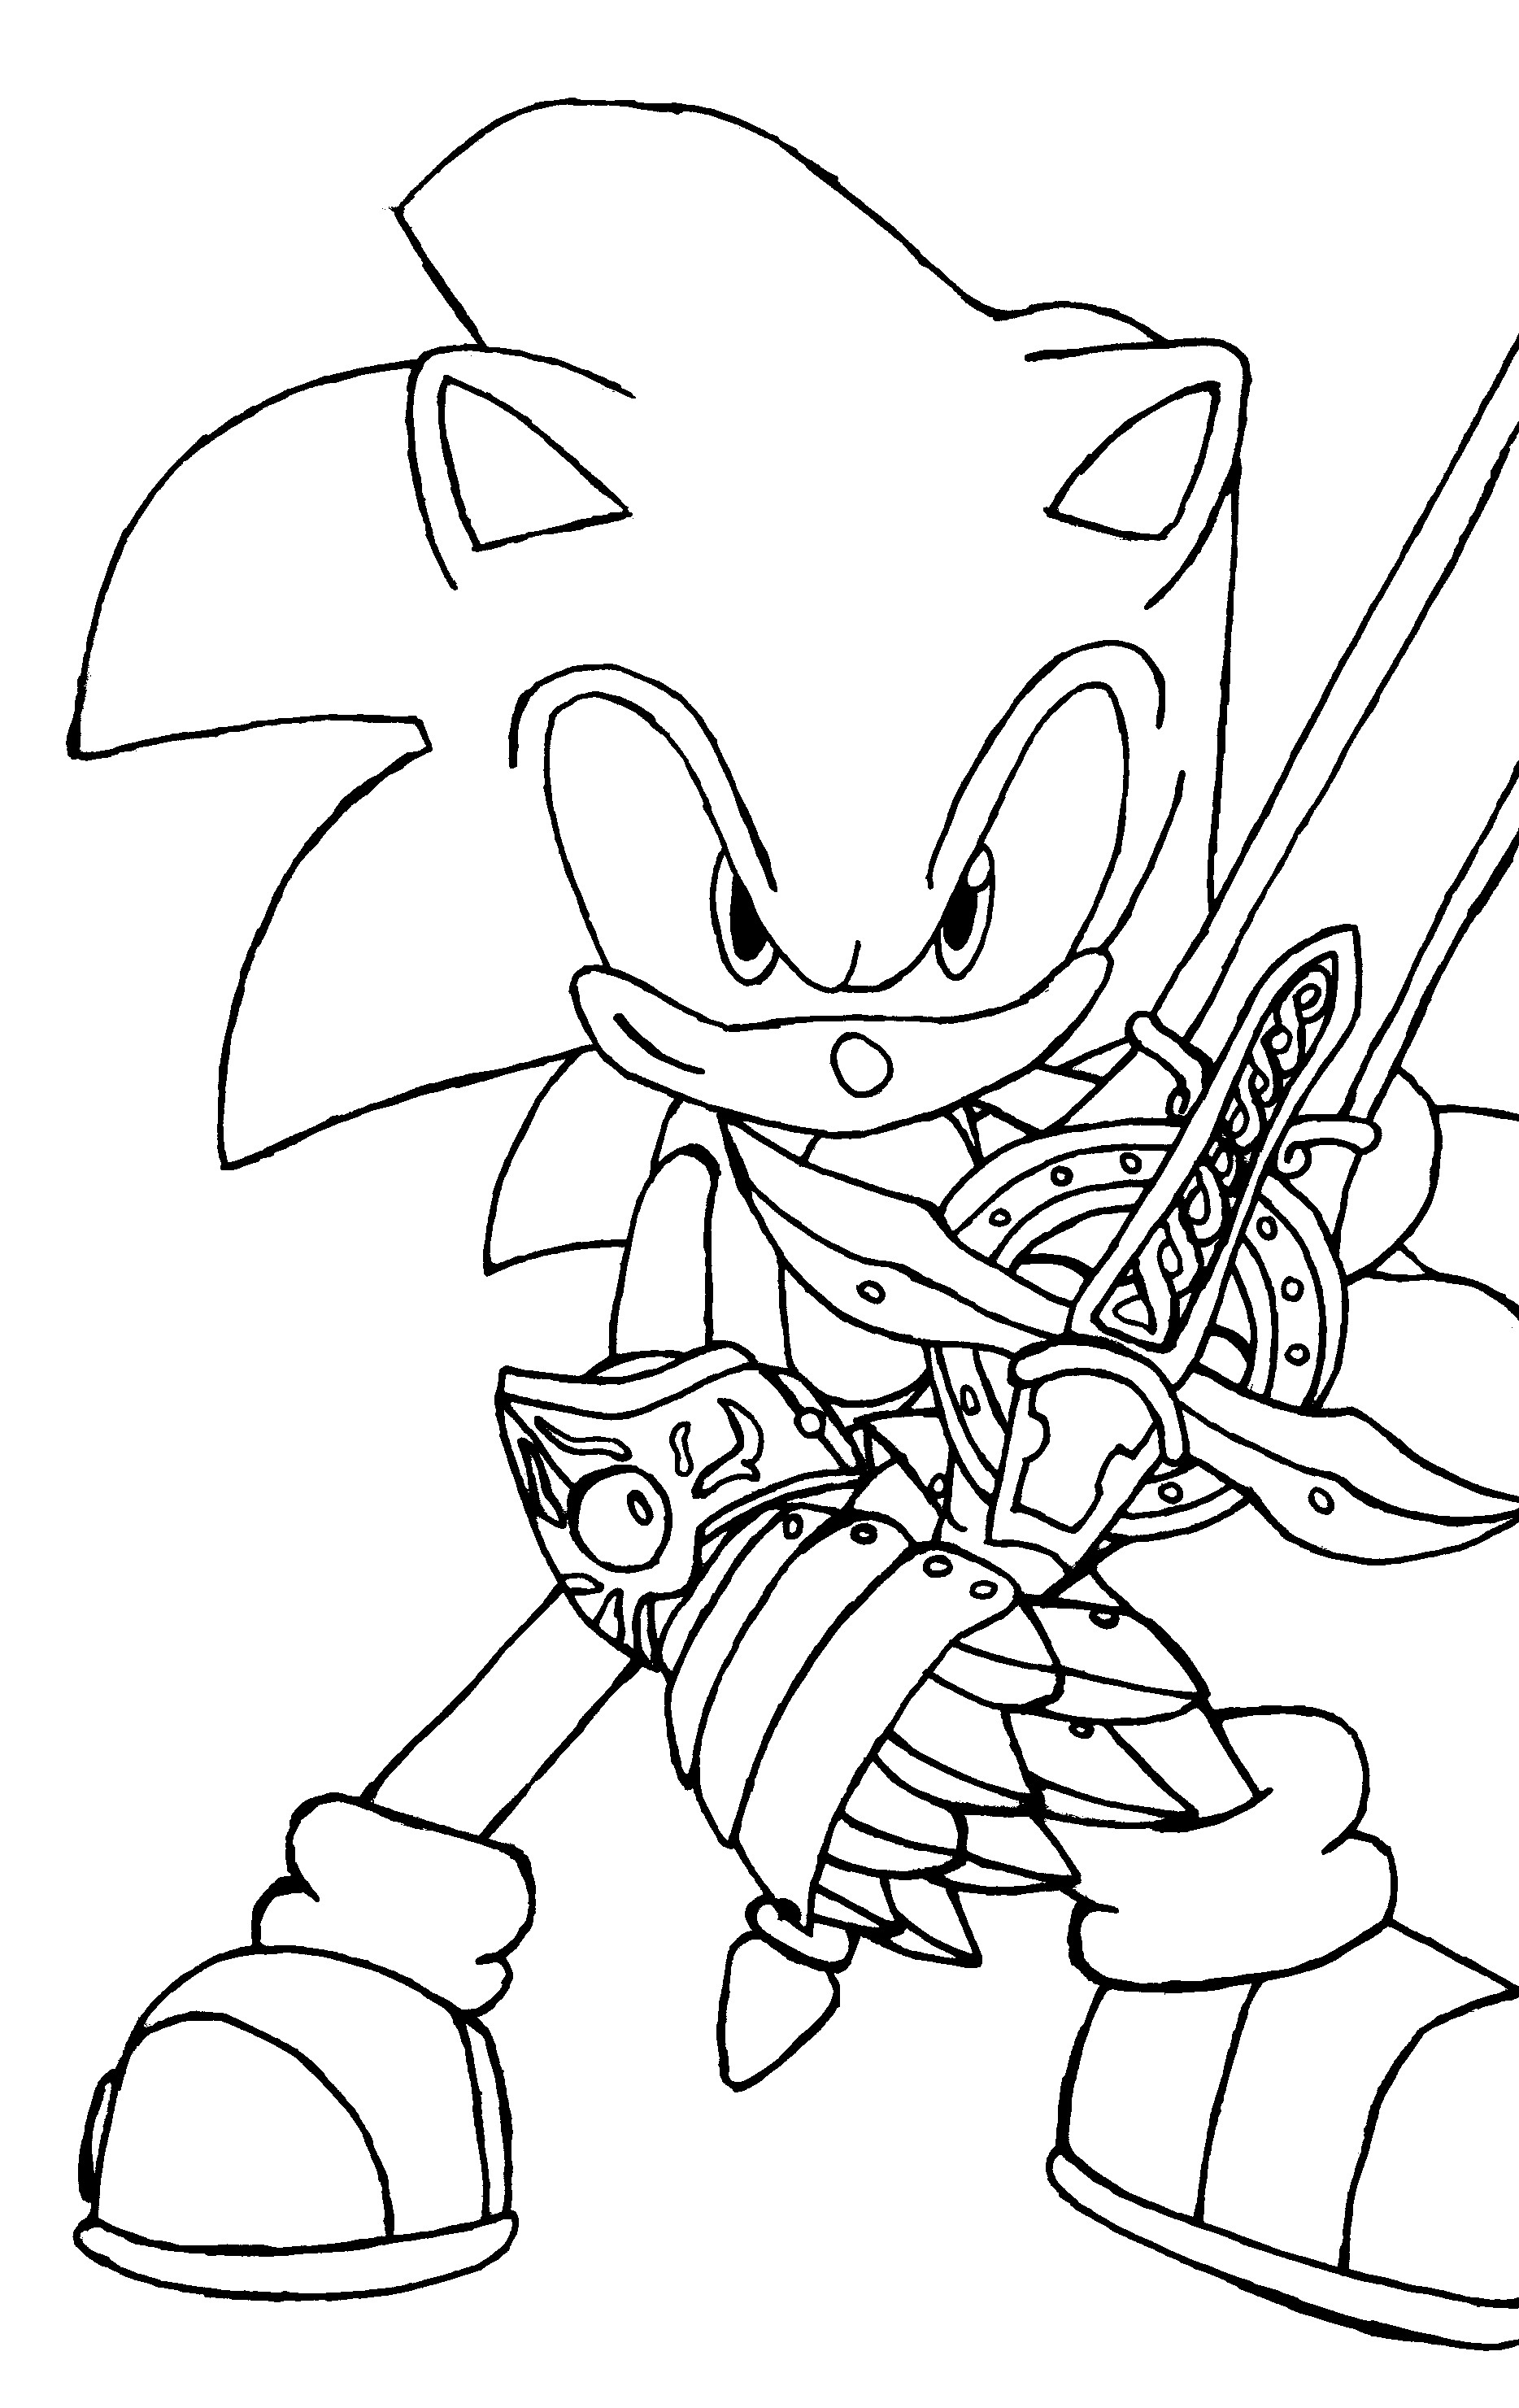 Print Pictures Of Sonic | Sonic The Hedgehog Coloring Pages Free - Sonic Coloring Pages Free Printable